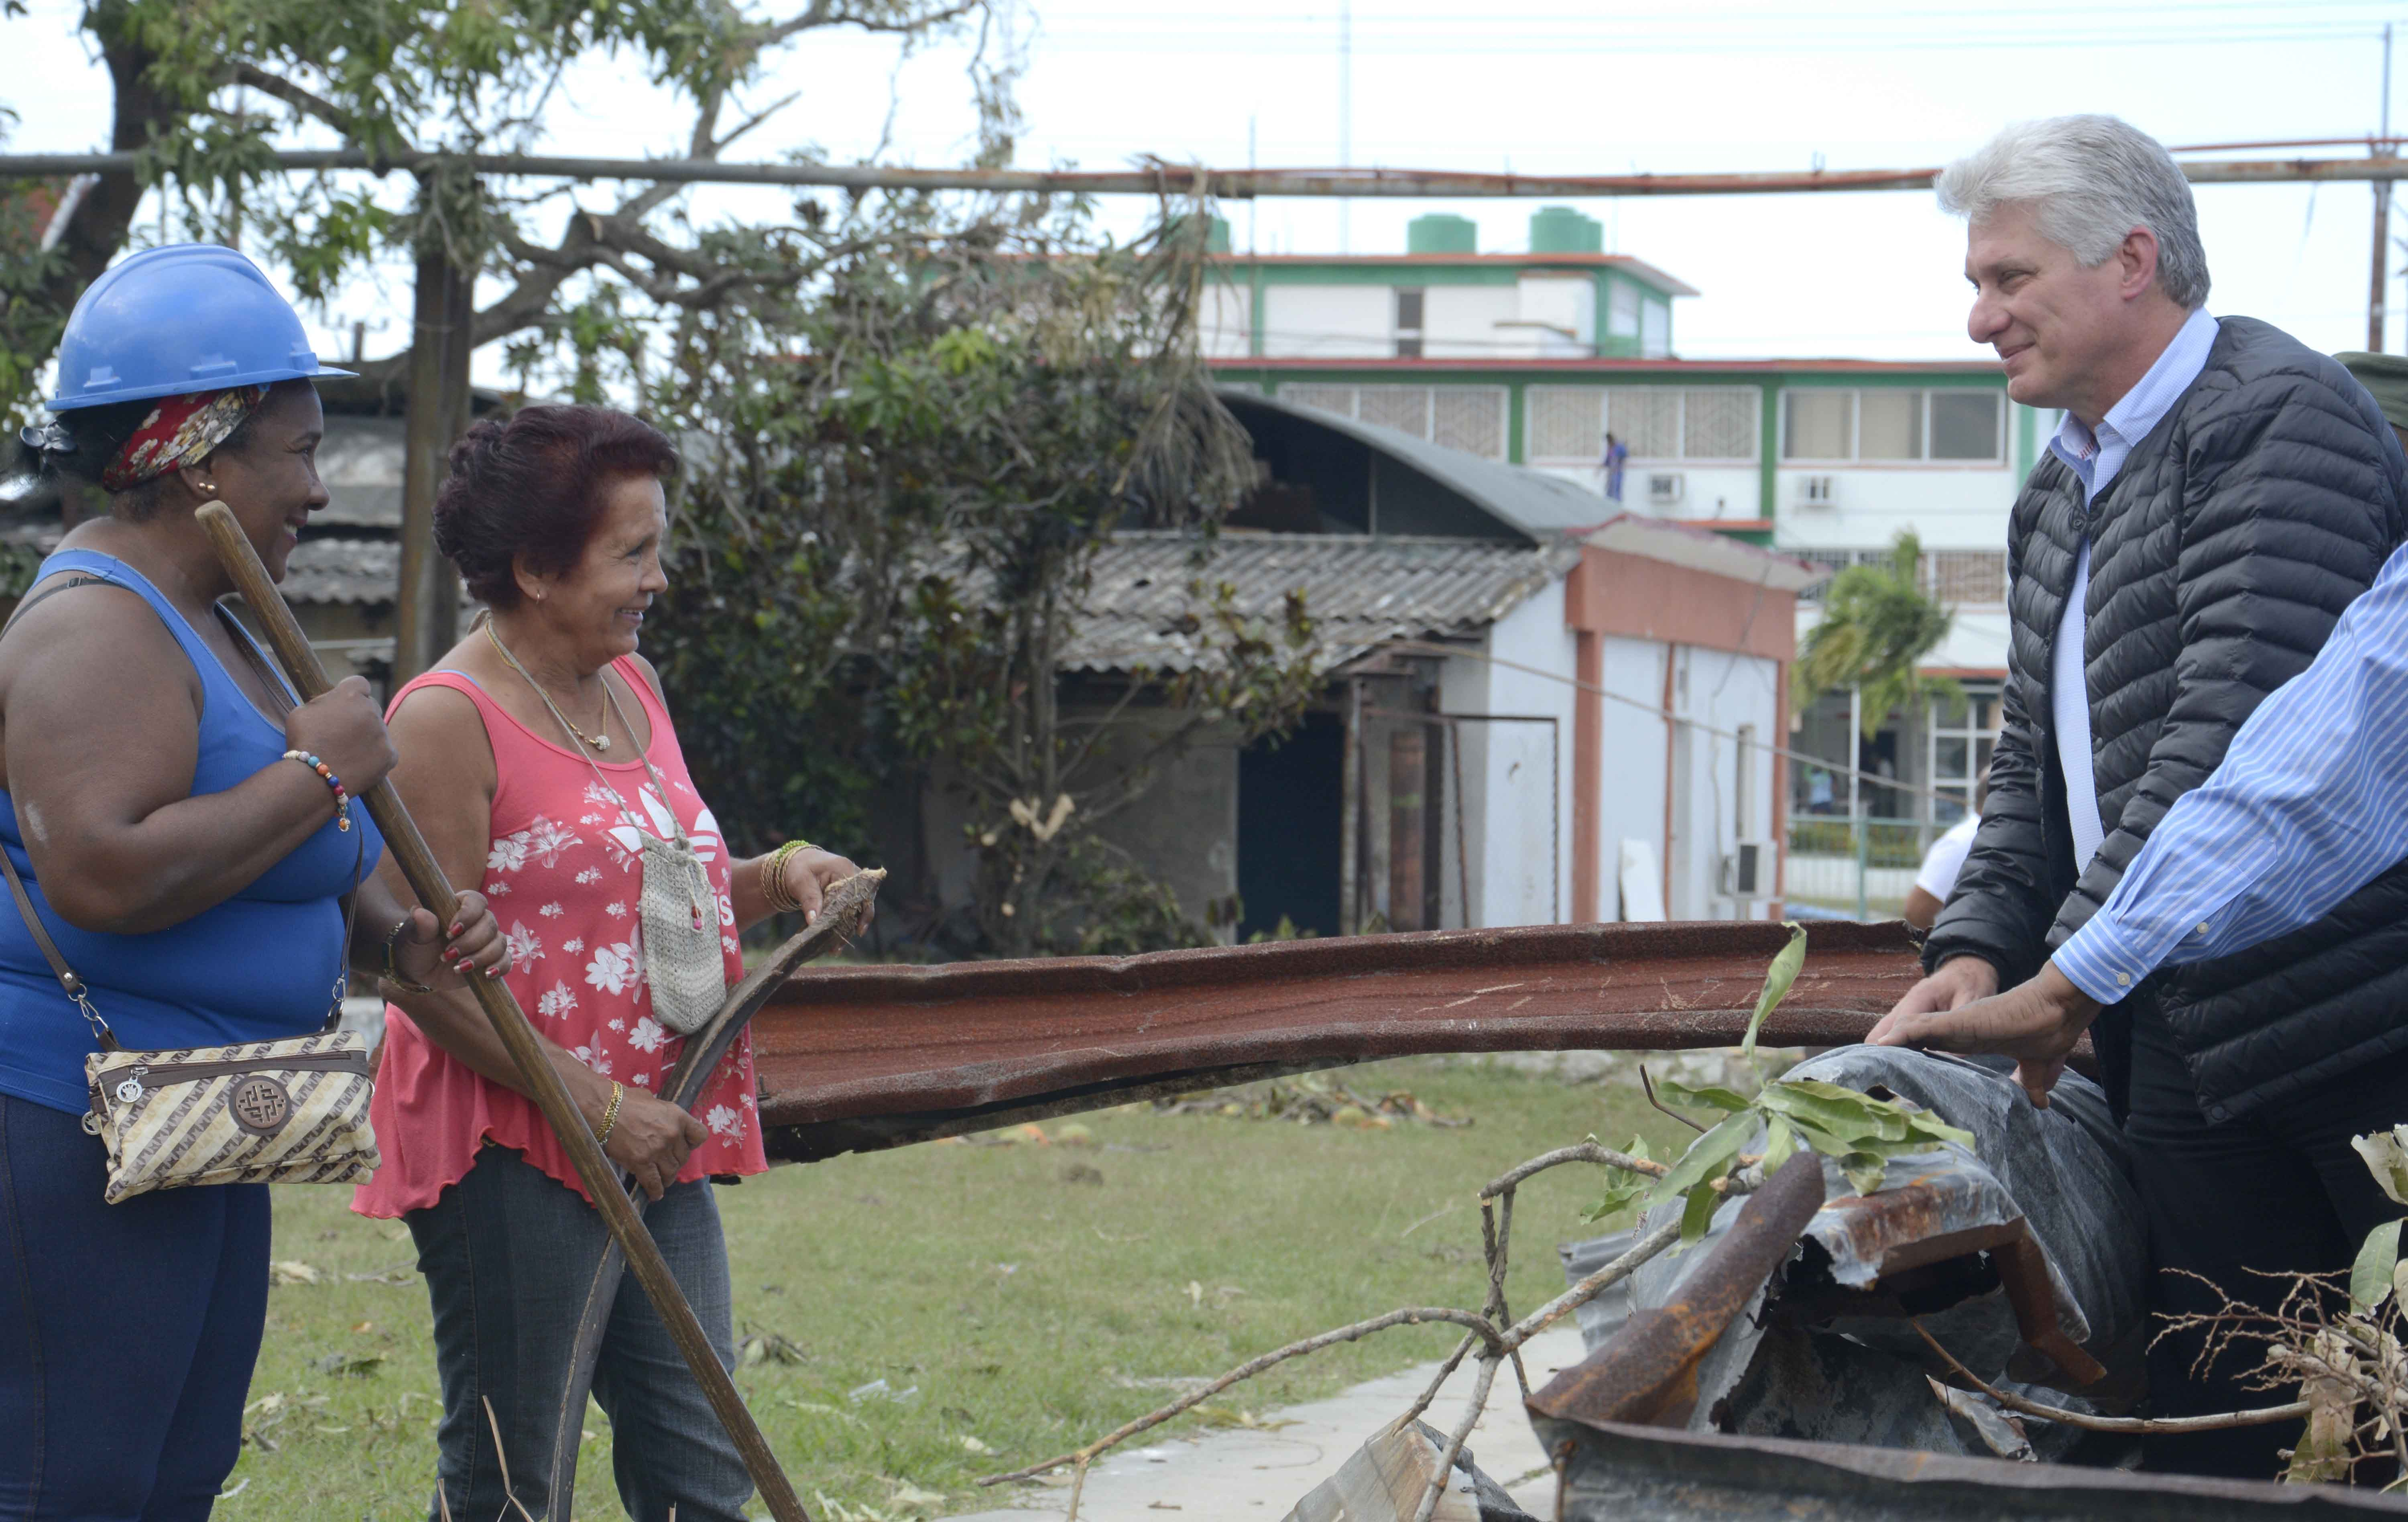 Diaz-Canel recognizes the atmosphere of industriousness in the recovery of Havana